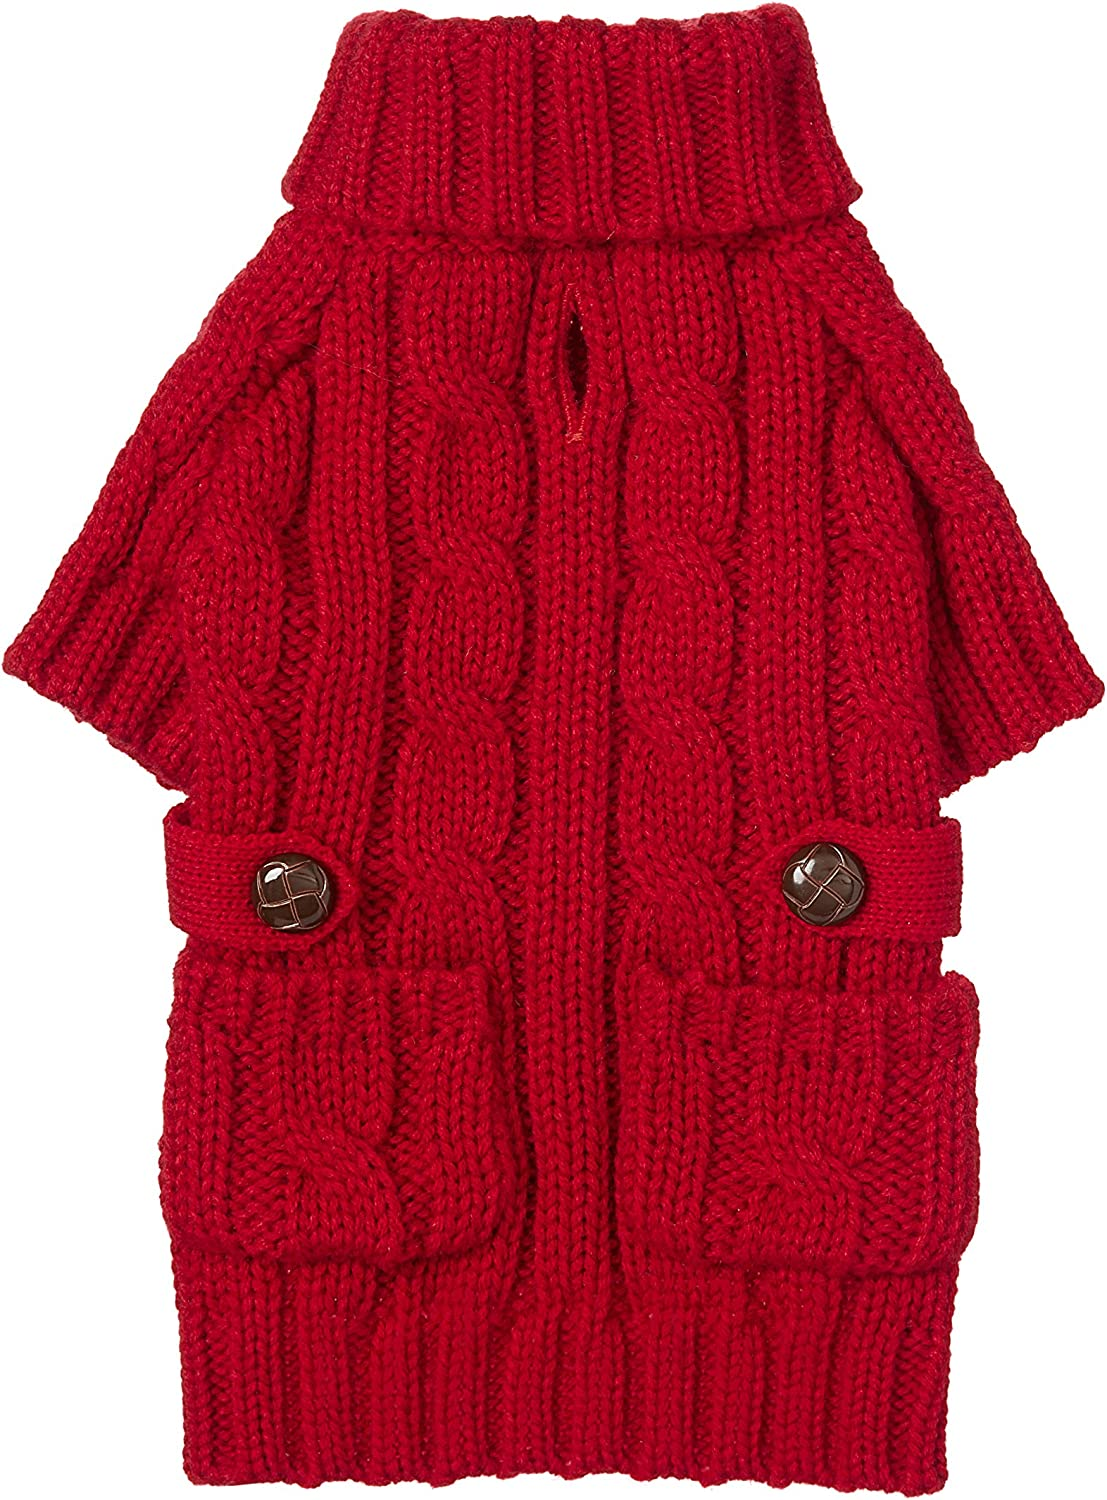 Fab Dog Chunky Turtleneck Dog Sweater, Red, 10Inch Length